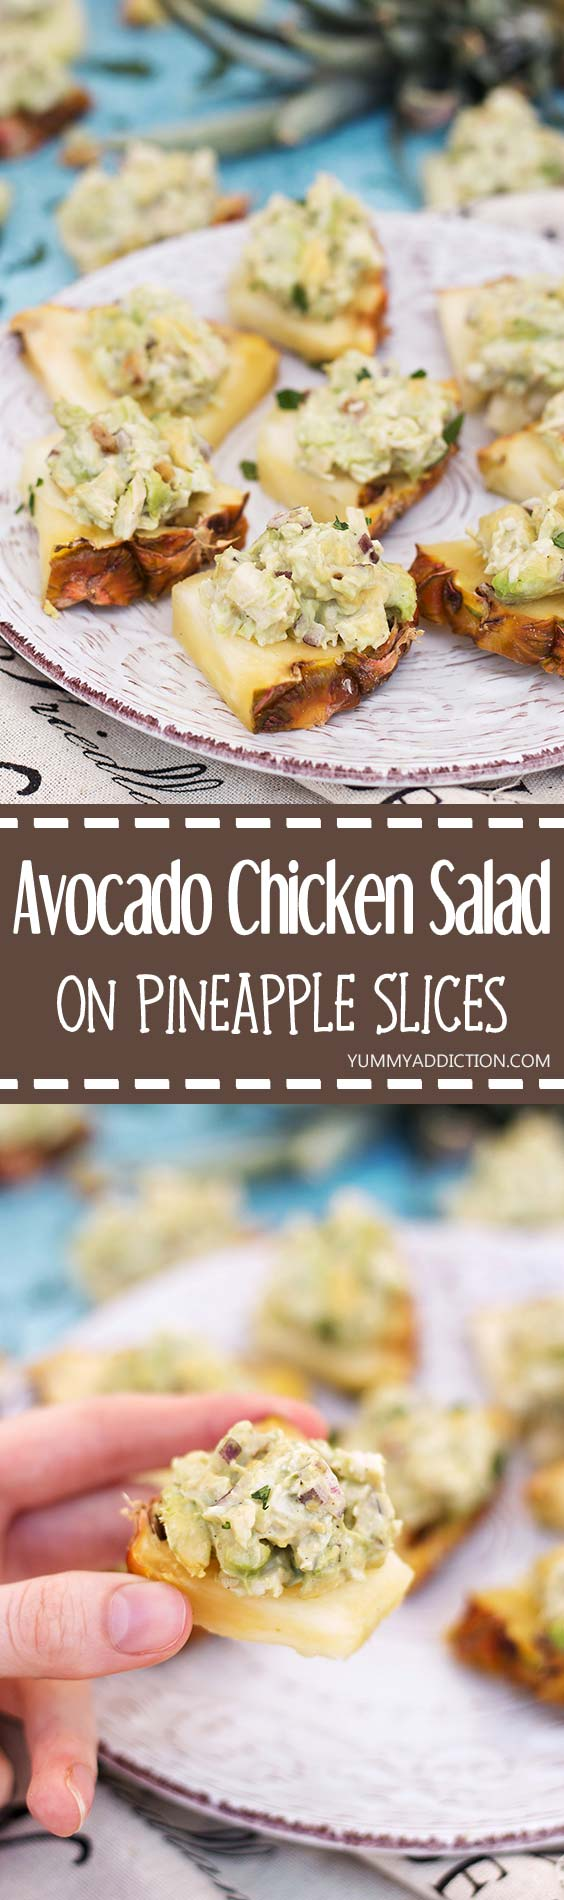 Have you ever tried serving Avocado Chicken Salad on Pineapple Slices? A great appetizer for any occasion your friends and family will absolutely love! | yummyaddiction.com